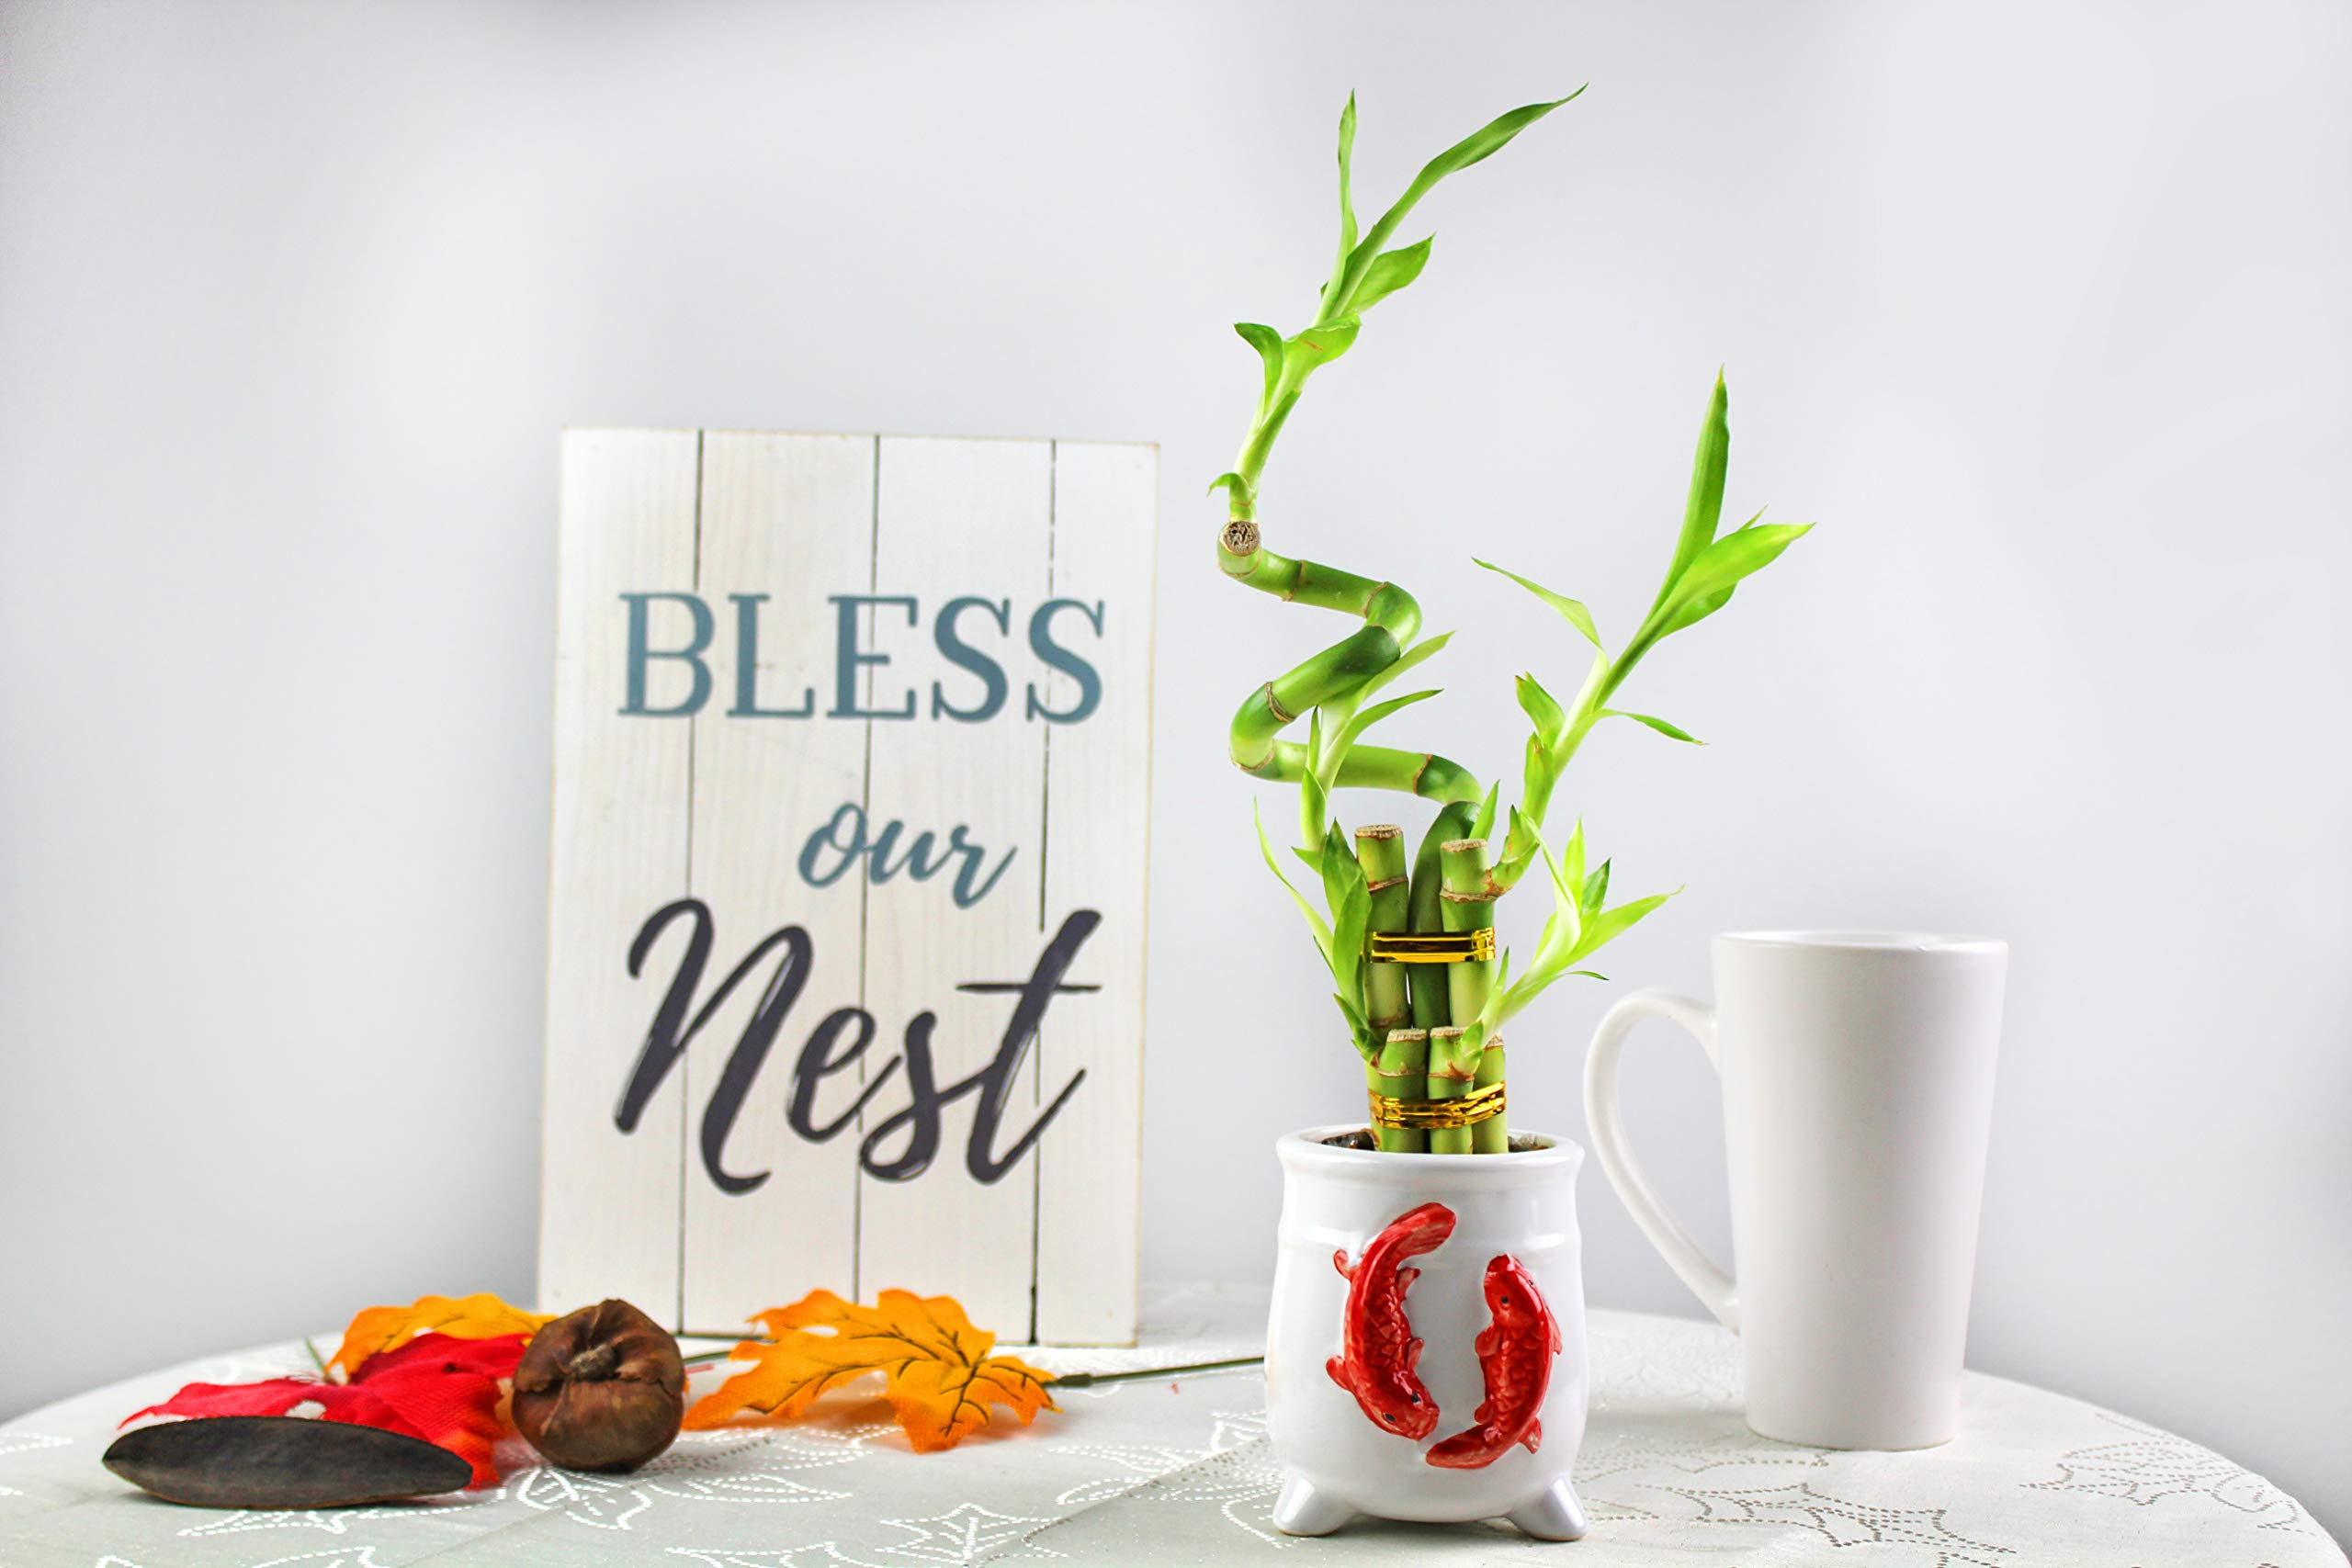 Live Lucky Bamboo 8-Inch Spiral Bamboo - Bundle of 10 Stalks - Live Indoor Plants for Home Decor, Arts & Crafts, and Feng Shui by NW Wholesaler